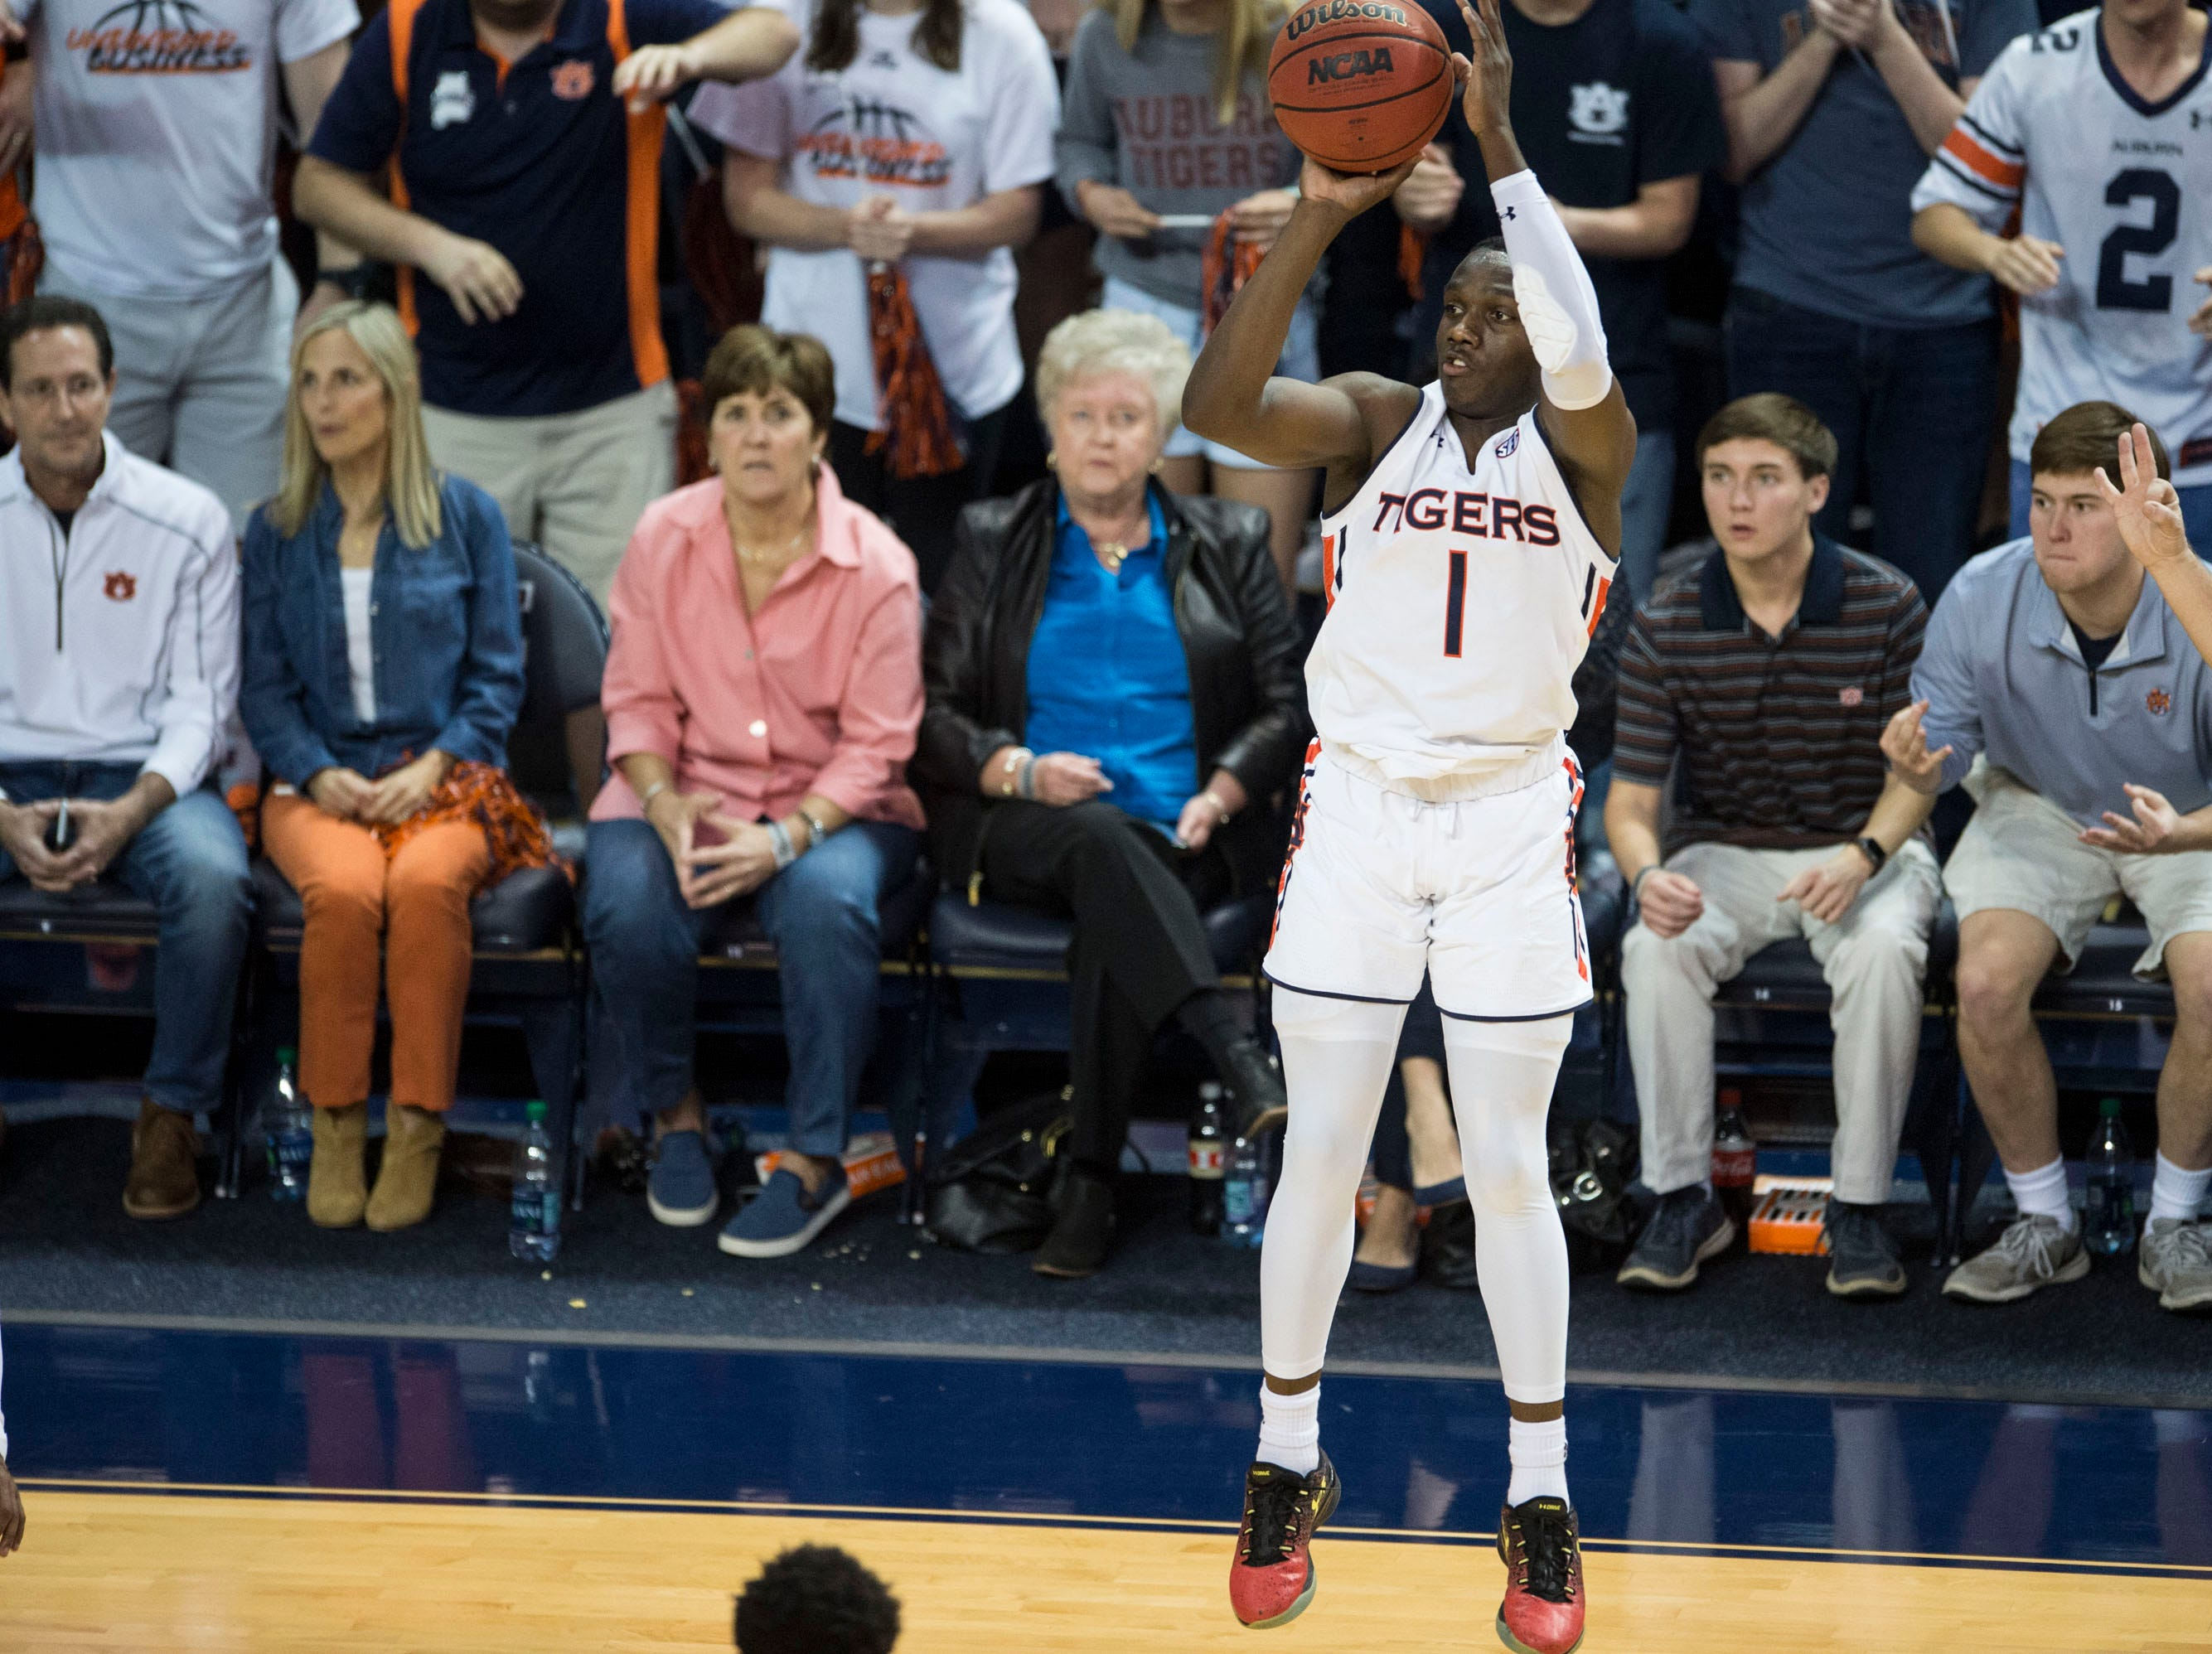 Auburn guard Jared Harper (1) takes a three pointer at Auburn Arena in Auburn, Ala., on Saturday, March 9, 2019. Auburn defeated Tennessee 84-80.